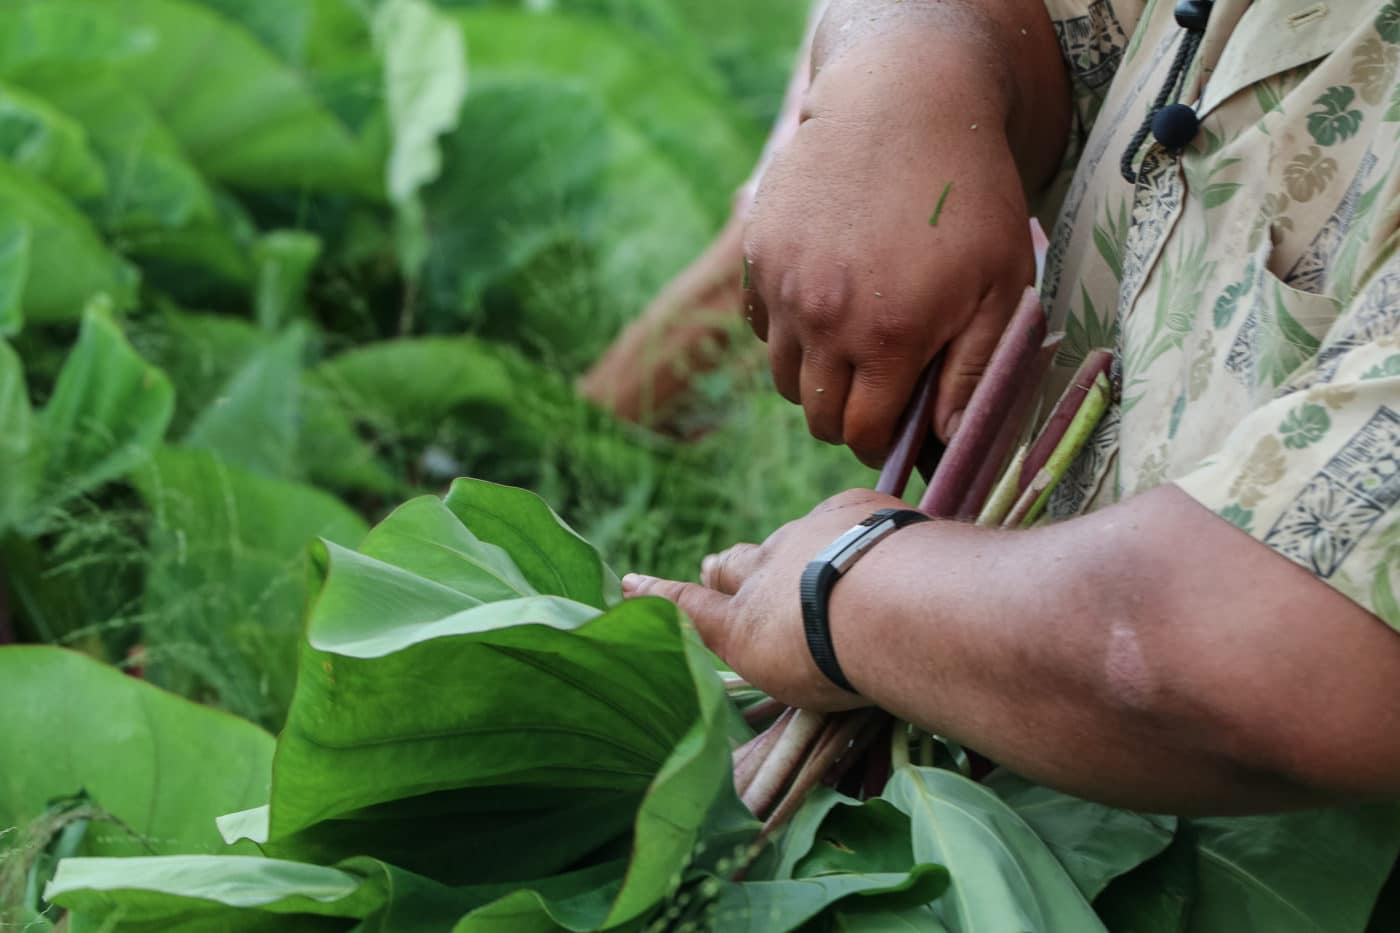 Project Director Kūʻike cuts the first kalo crop at Kupa ʻAina